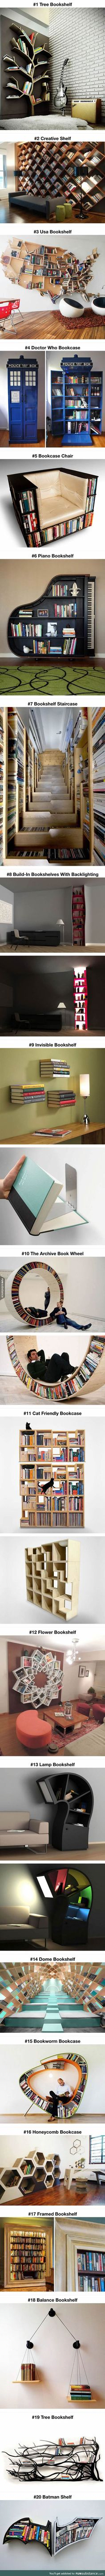 20 Most Creative Bookshelves For Your Home